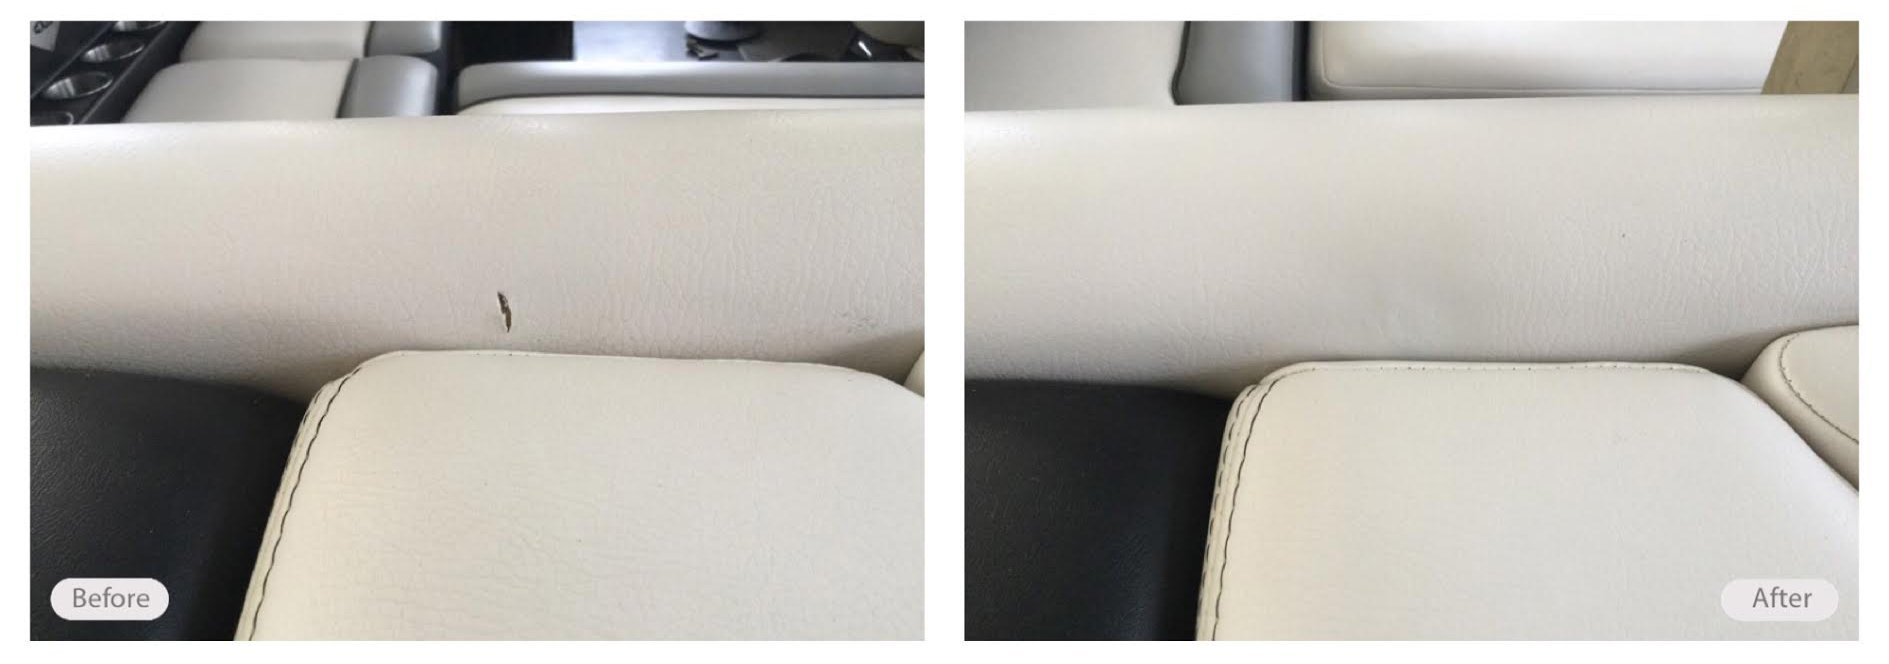 Holes, rips and burn marks in boat seats can be restored